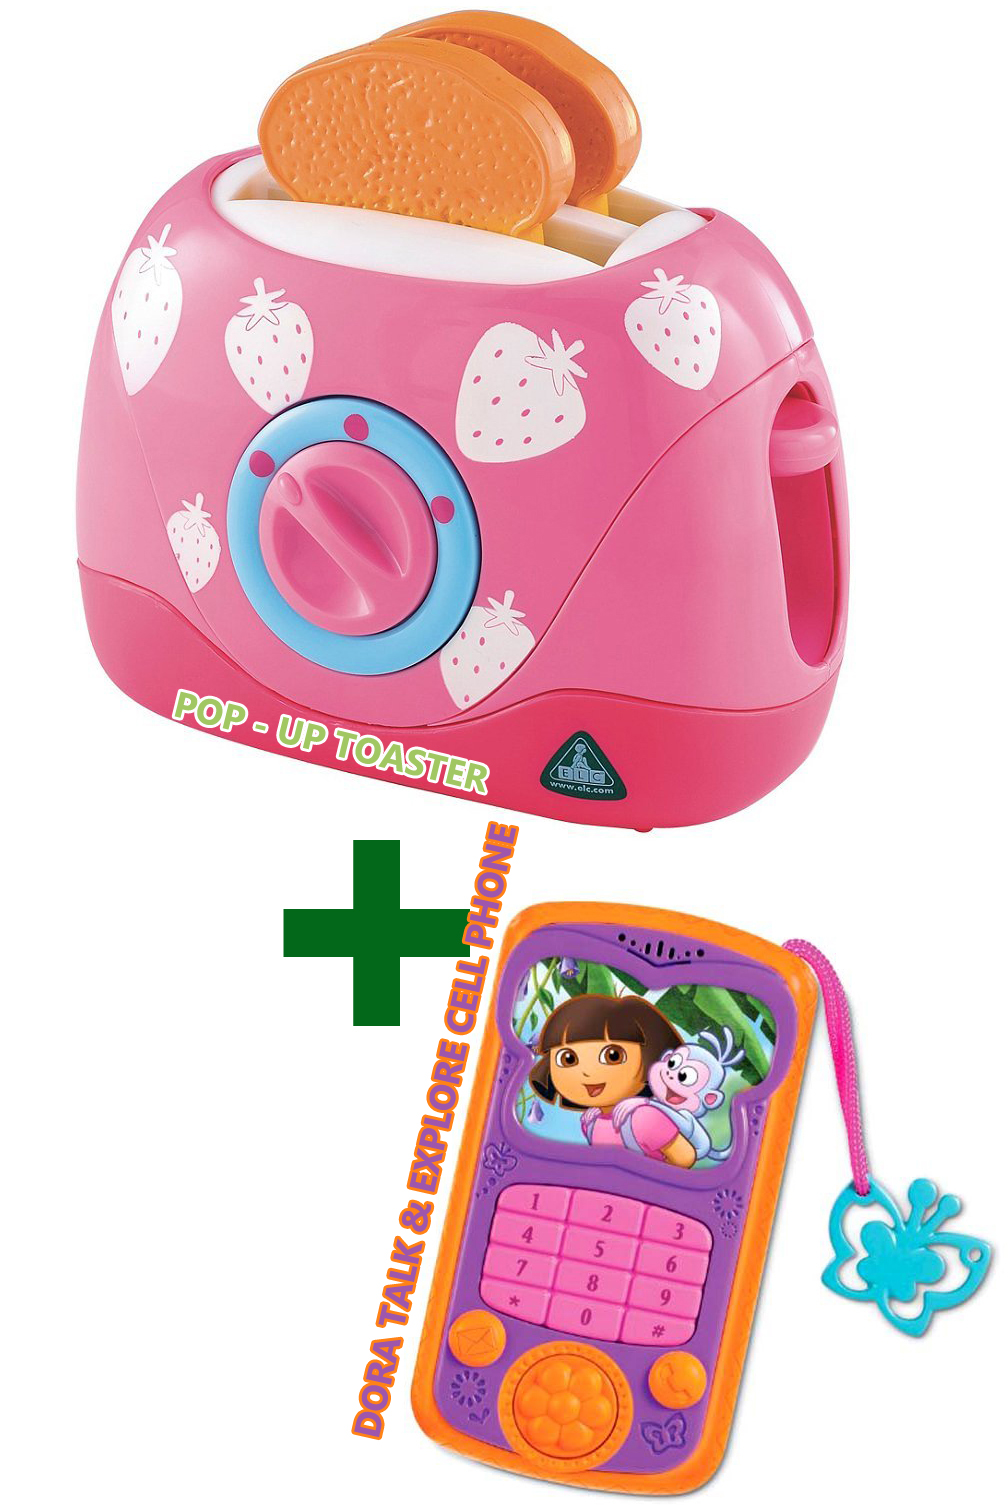 Pop - Up Toaster and Dora Talk & Explore Cell Phone